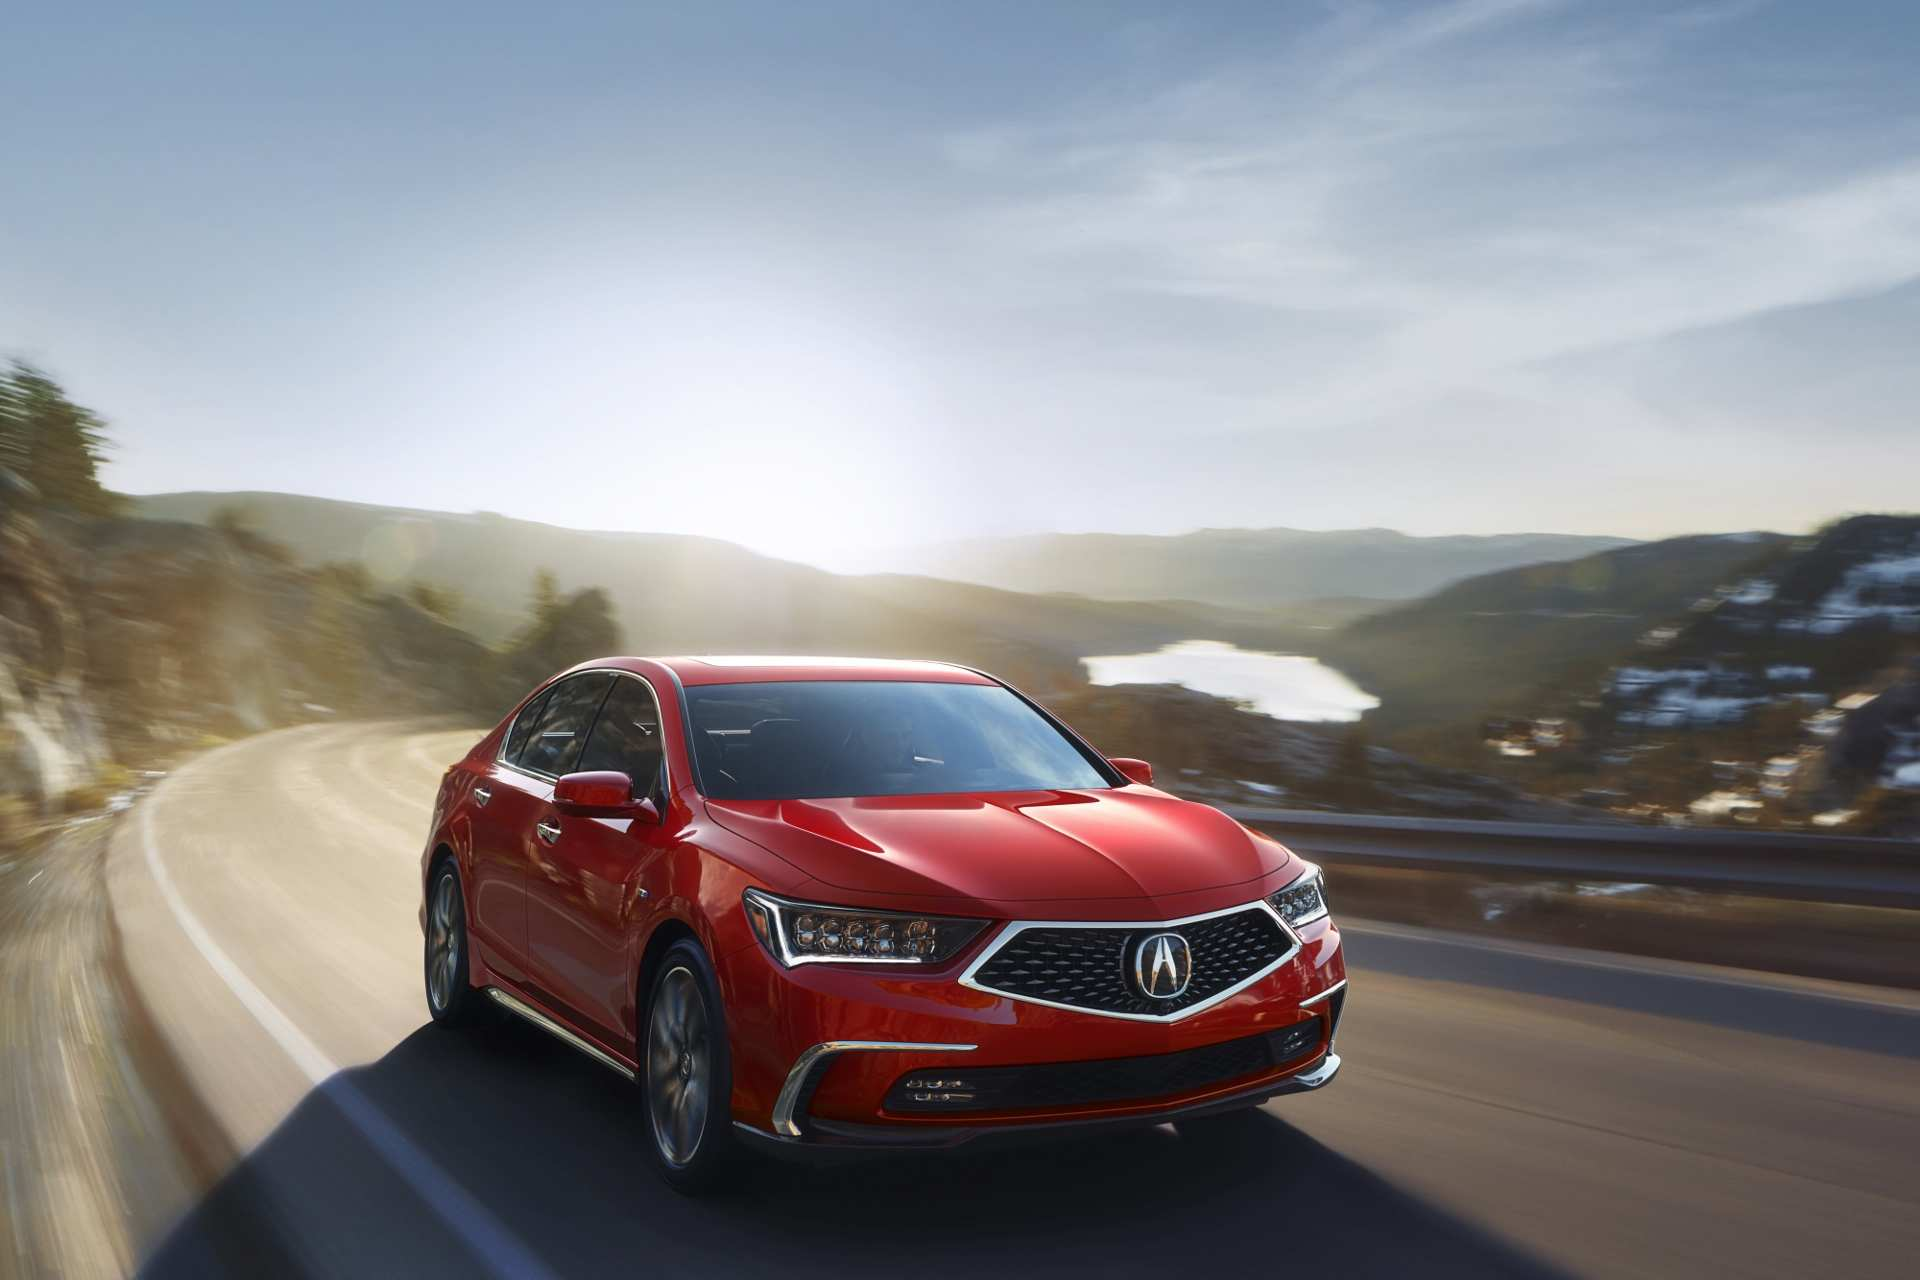 81 Gallery of New 2019 Acura Tlx Youtube Rumor Reviews by New 2019 Acura Tlx Youtube Rumor